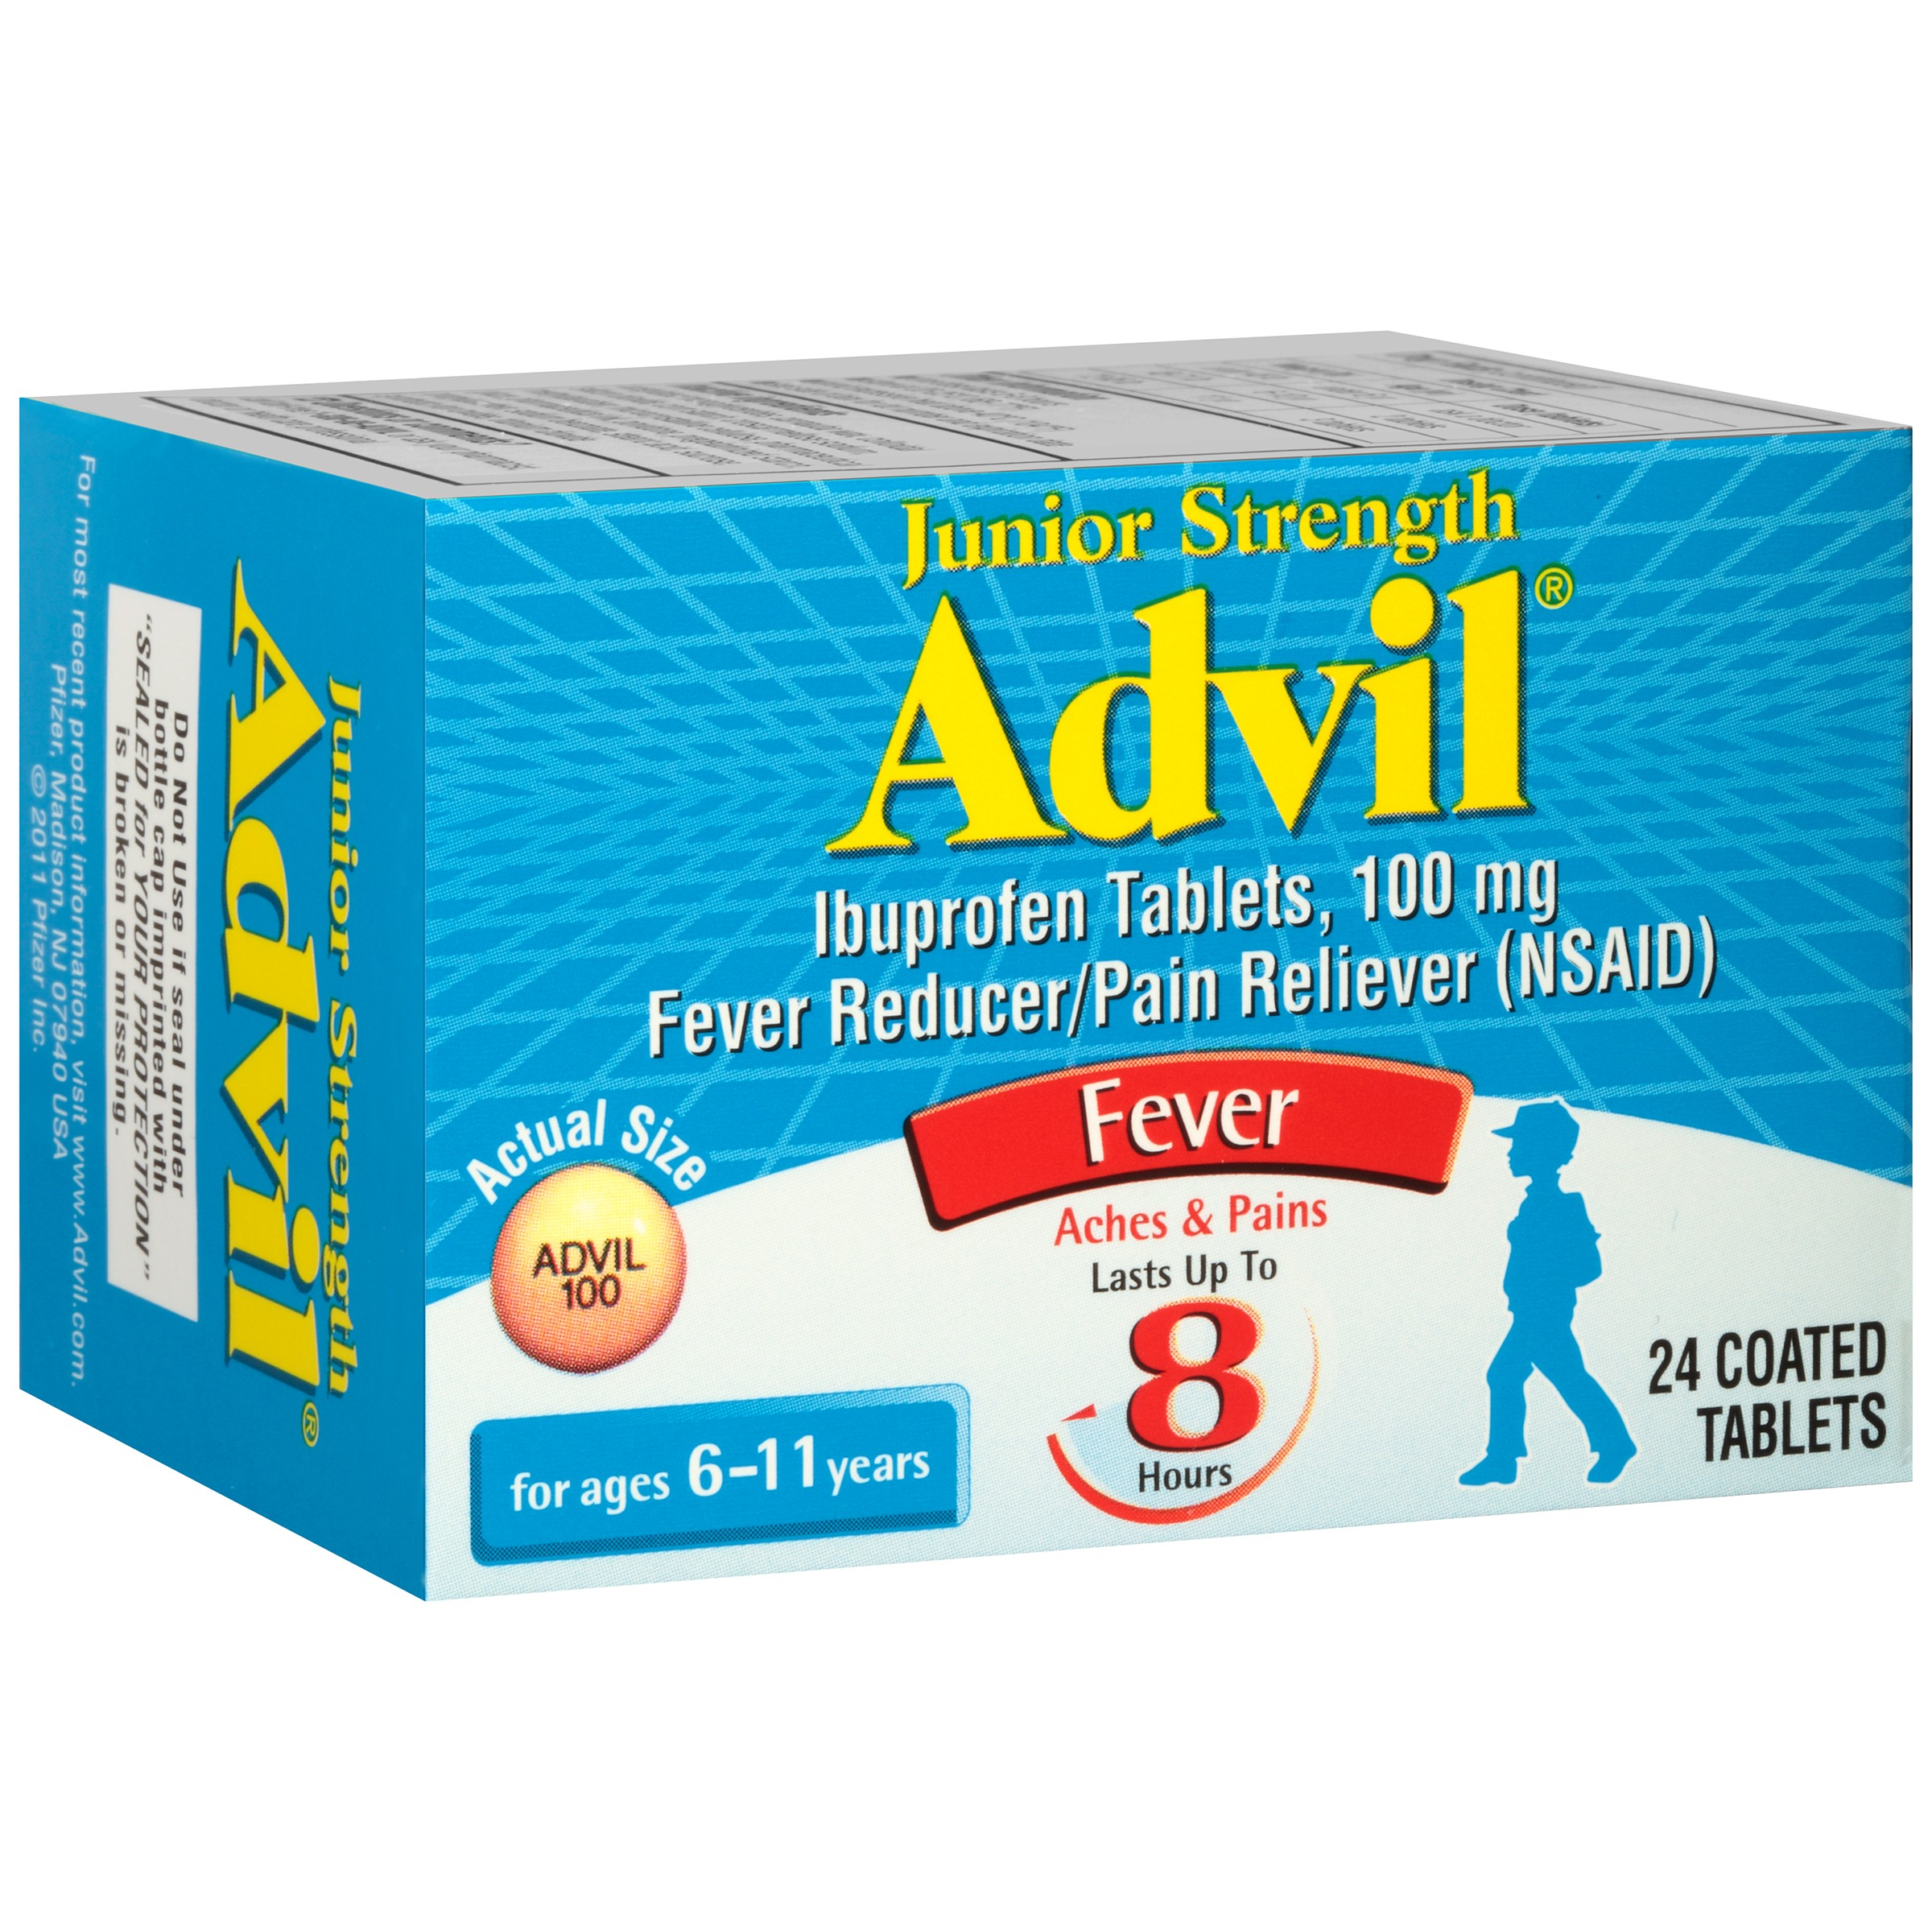 Junior Strength Advil Fever Reducer/Pain Reliever (Ibuprofen) Tablets 100mg 24 ct Box